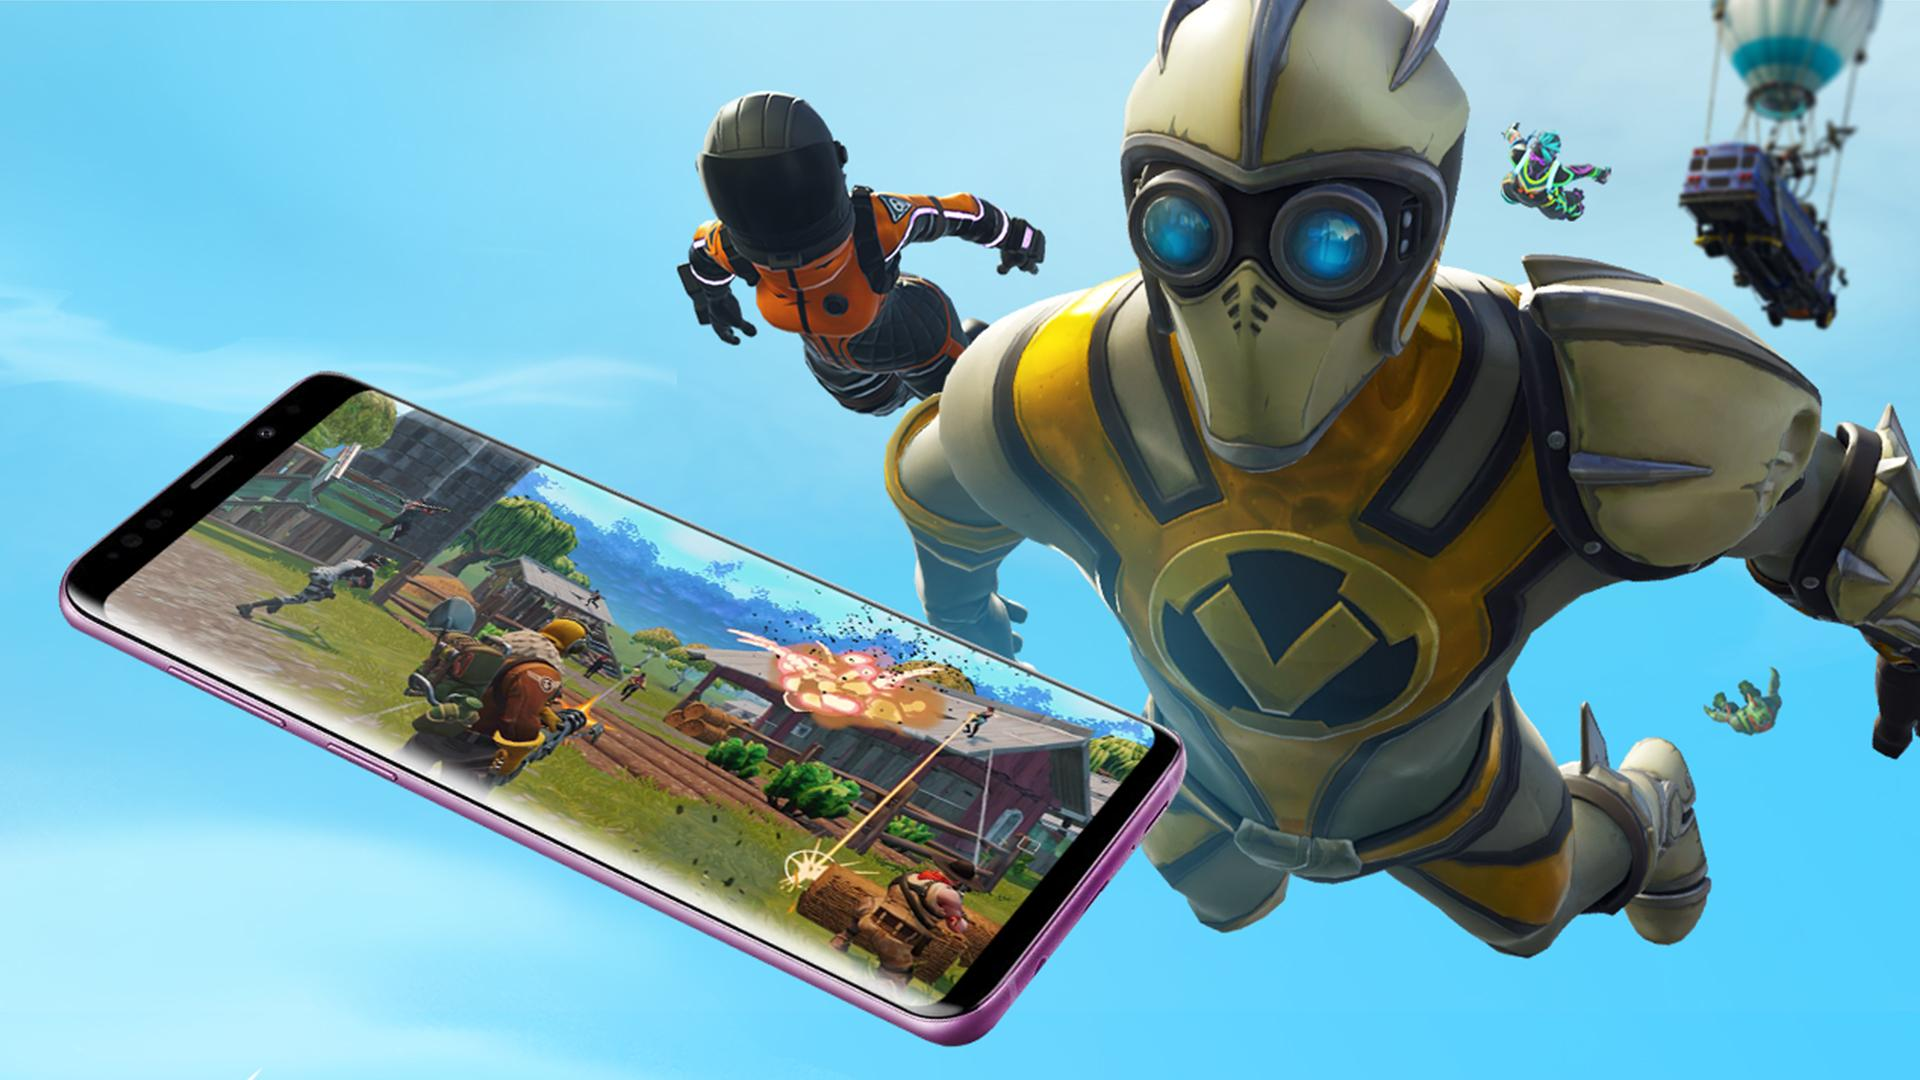 How To Download Fortnite For Android After Epic Games Blocked Mobile